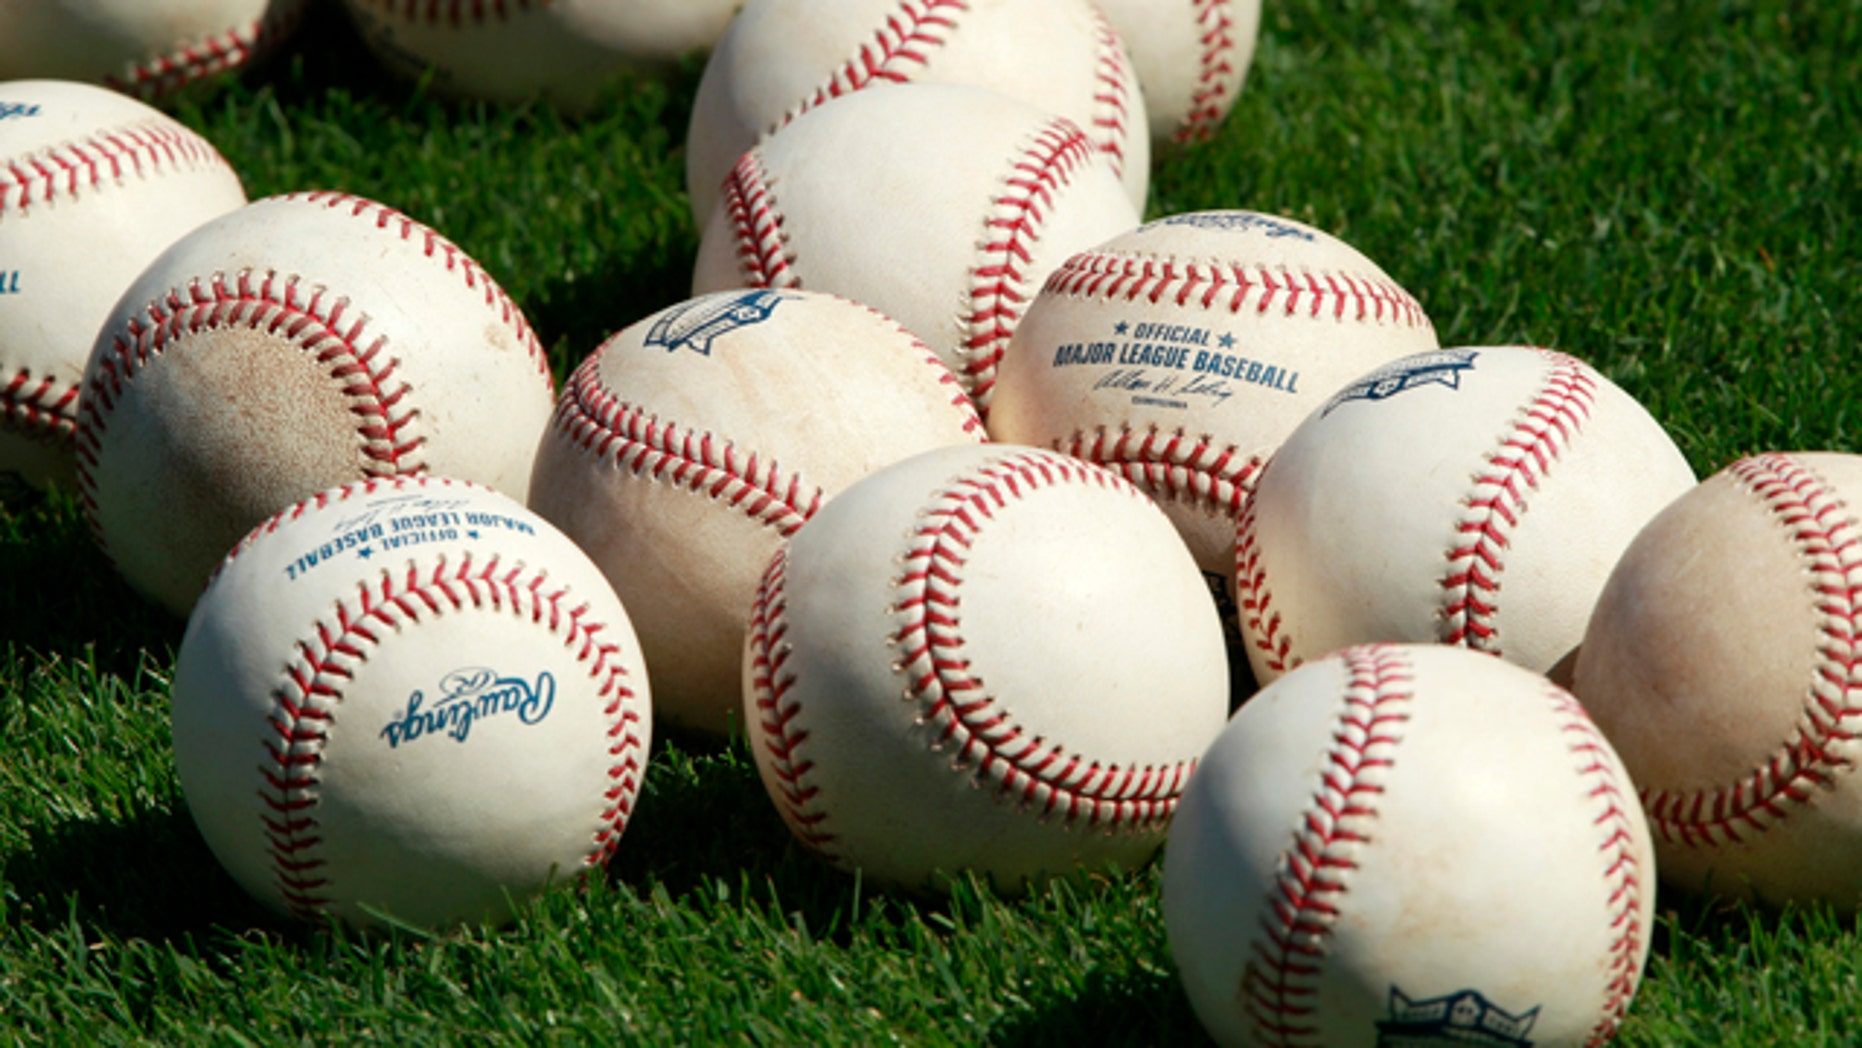 Baseballs sit on the infield grass during batting practice at the Minnesota Twins baseball spring training facility in Fort Myers February 23, 2011.  REUTERS/Hans Deryk  (UNITED STATES - Tags: SPORT BASEBALL)